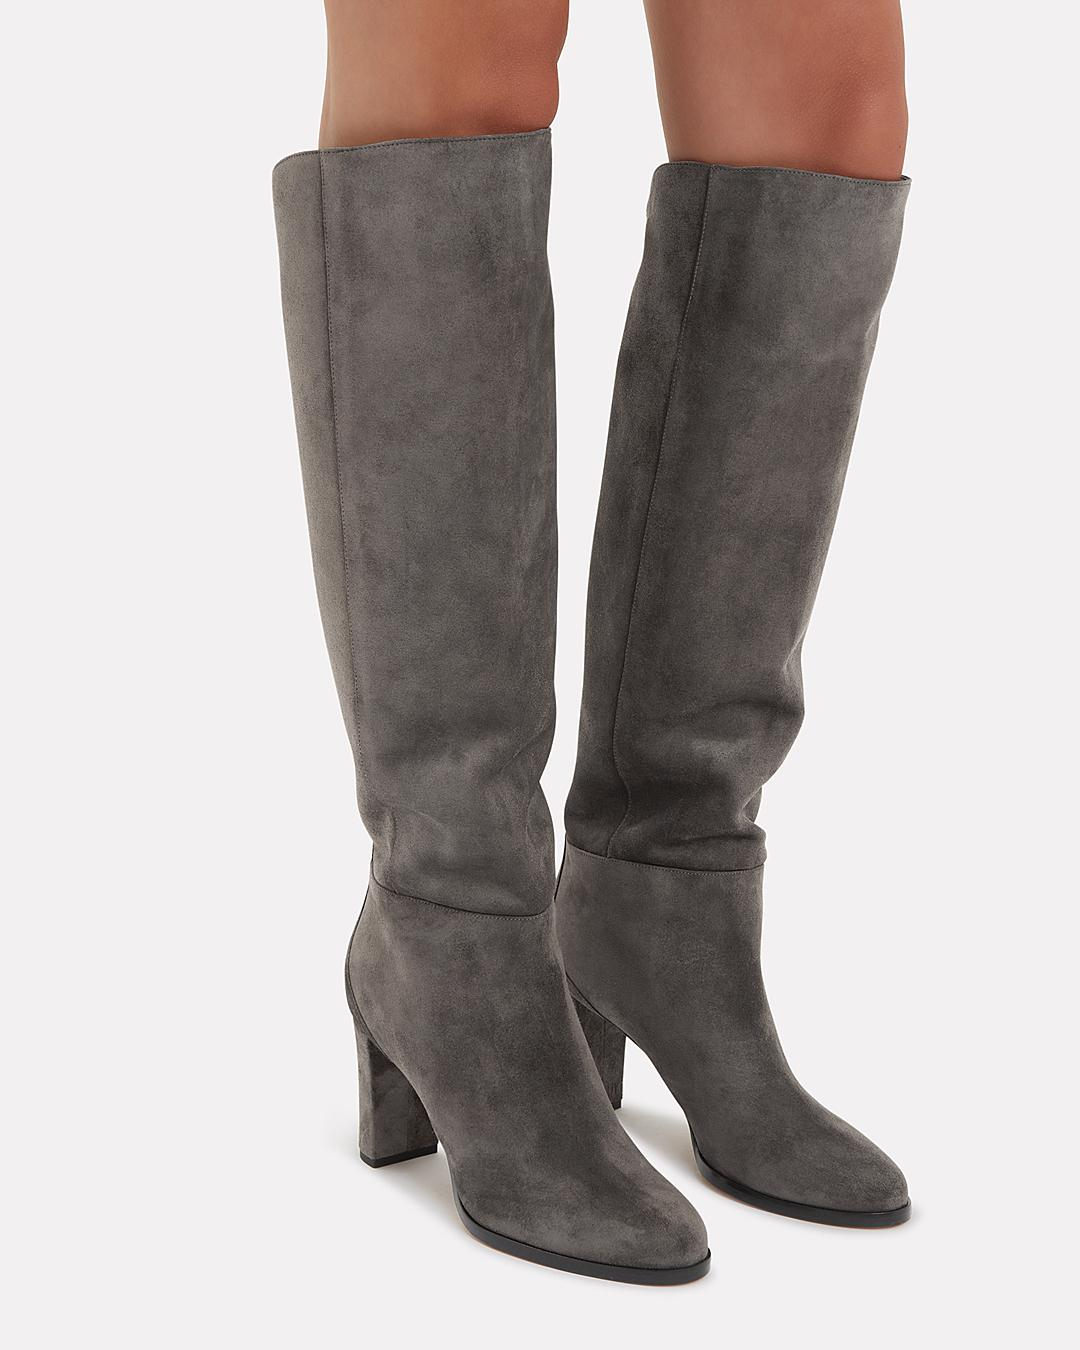 2145fb4fe4c Lyst - Jimmy Choo Madalie Suede Boots in Gray